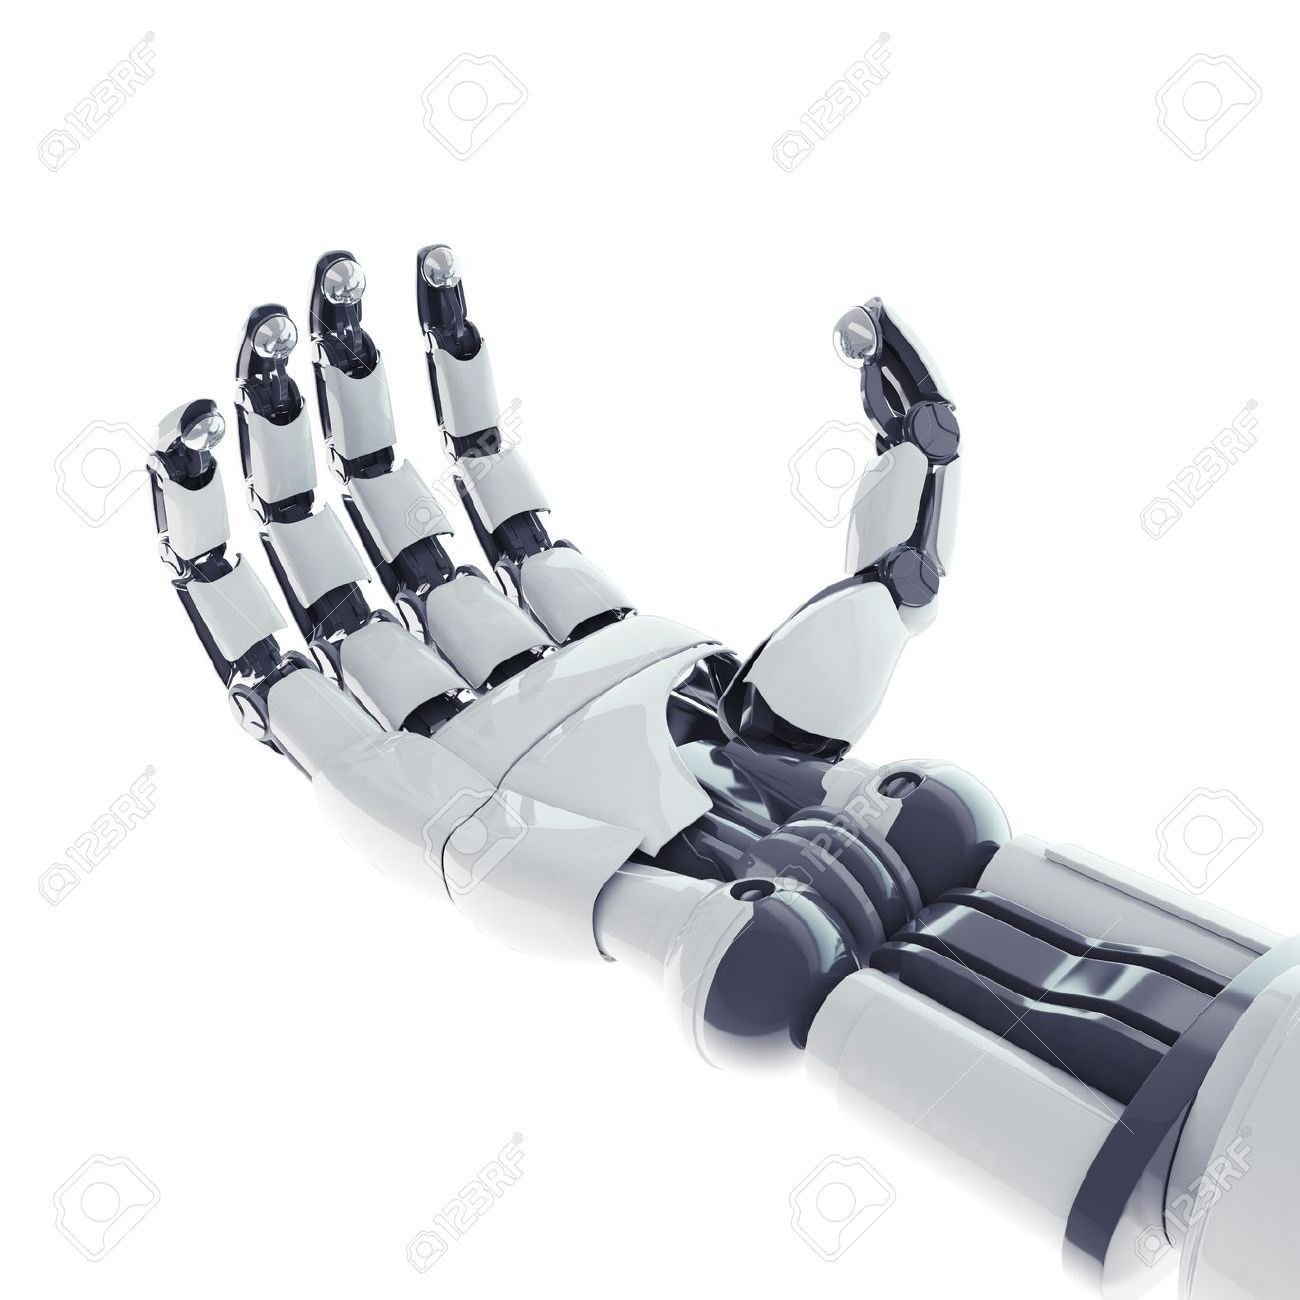 Robotic Hand Google Search Robot In 2018 Pinterest Robot